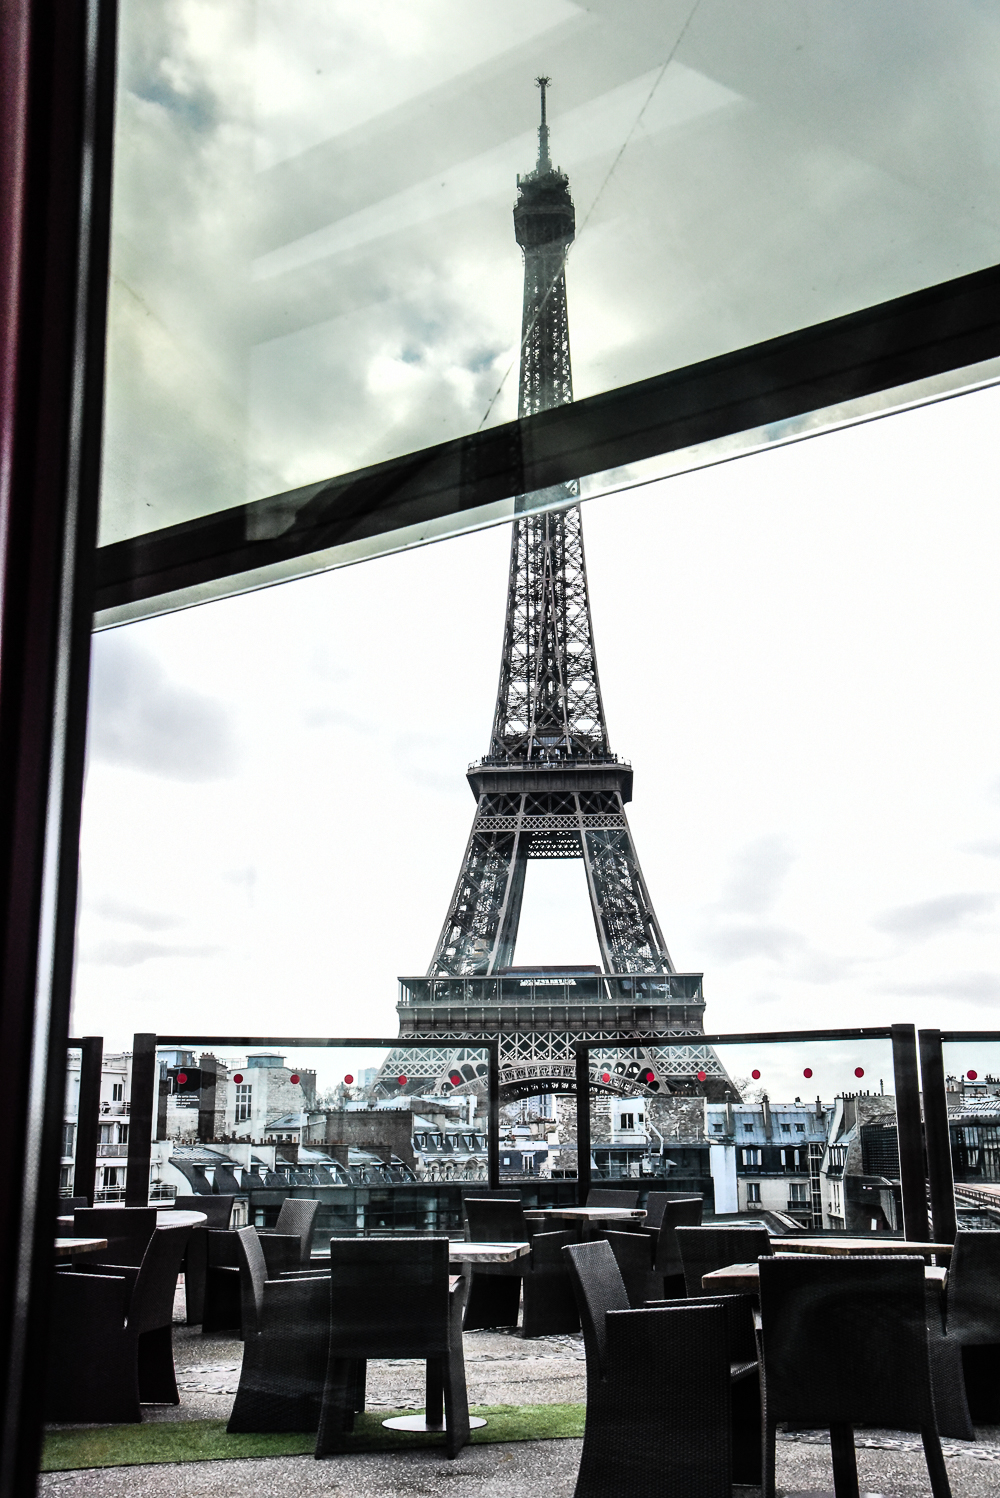 restaurant with one of the best views of the eiffel tower in paris